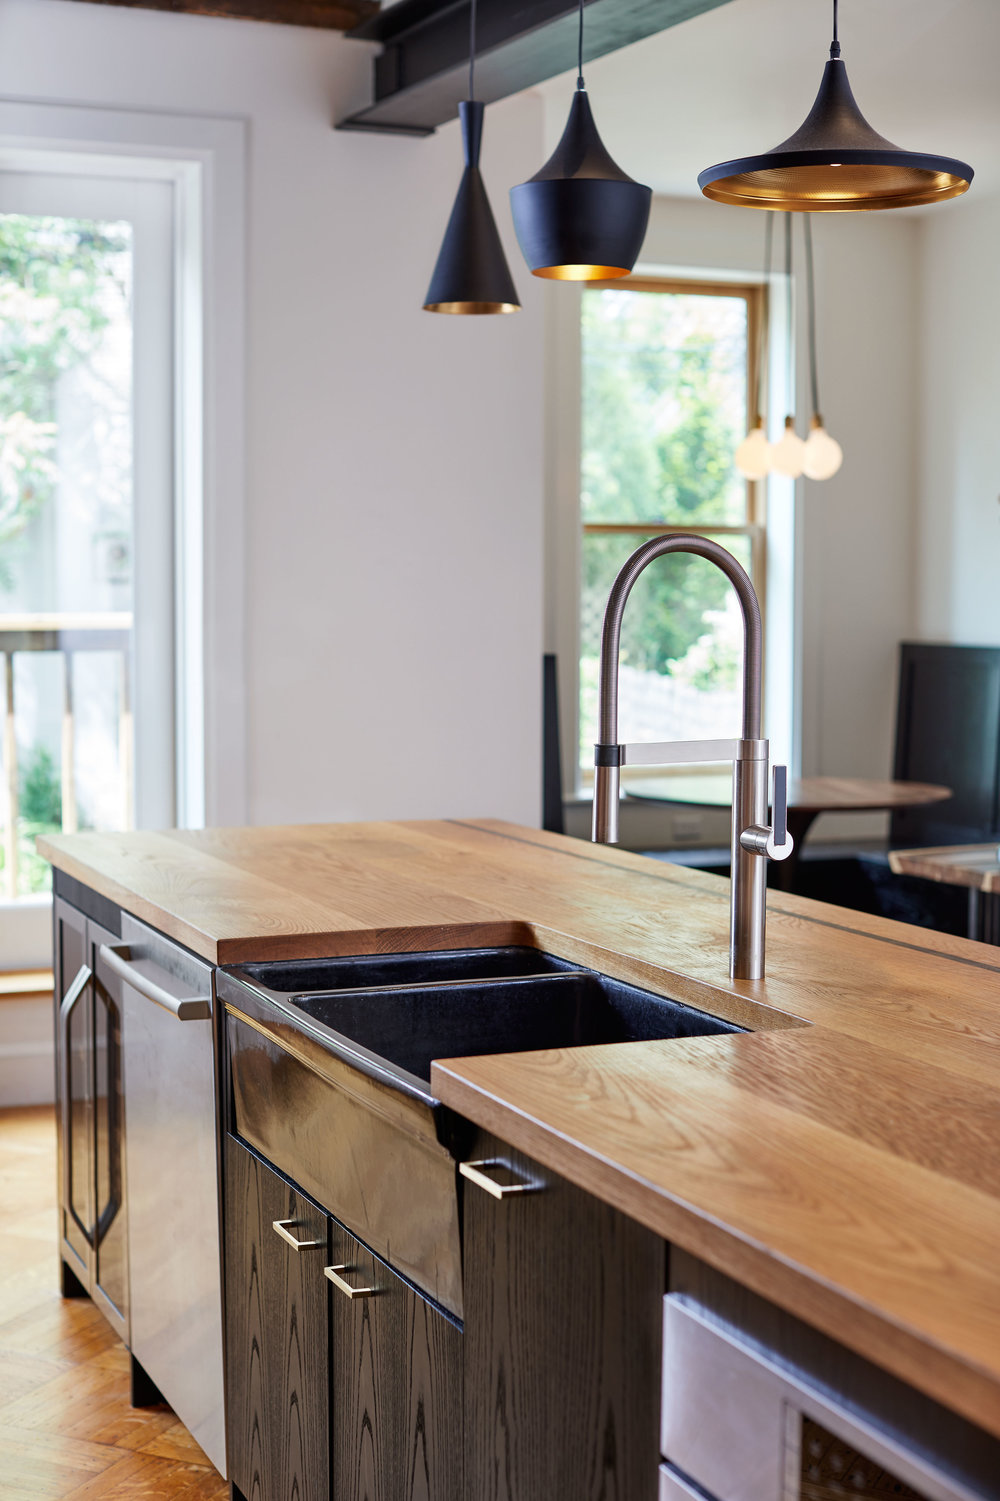 GDT Brooklyn Design Build: Furniture, Millwork And Interiors